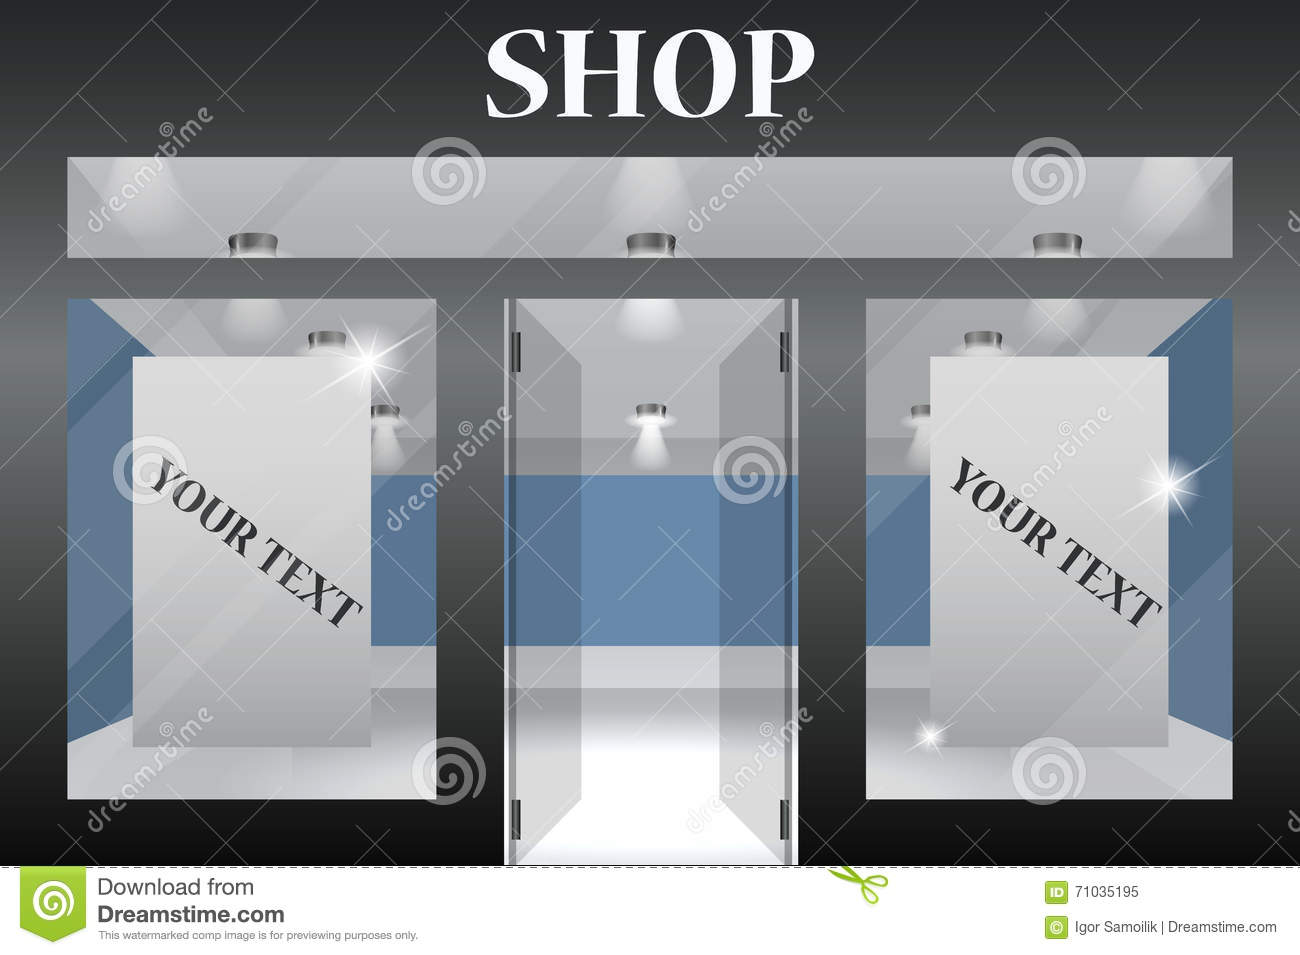 Shop exterior front stock image 71842273 for Shops exterior design